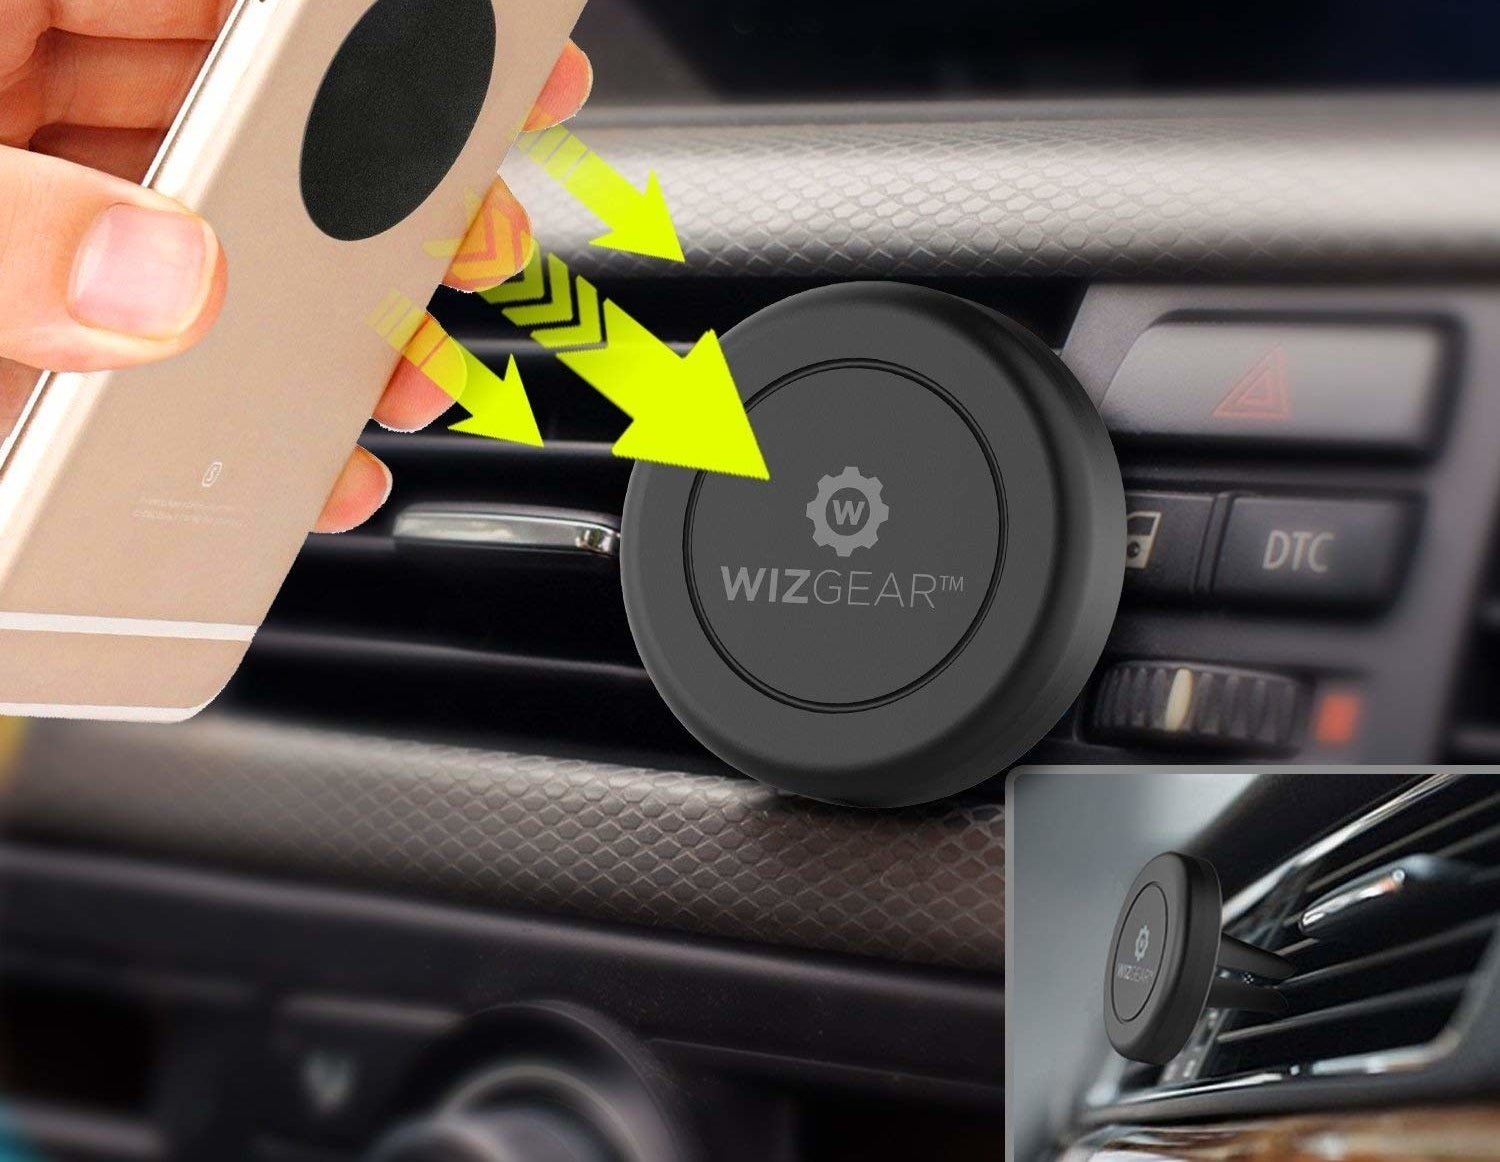 A person attaching their phone to their car's air vent using the magnetic car mount.